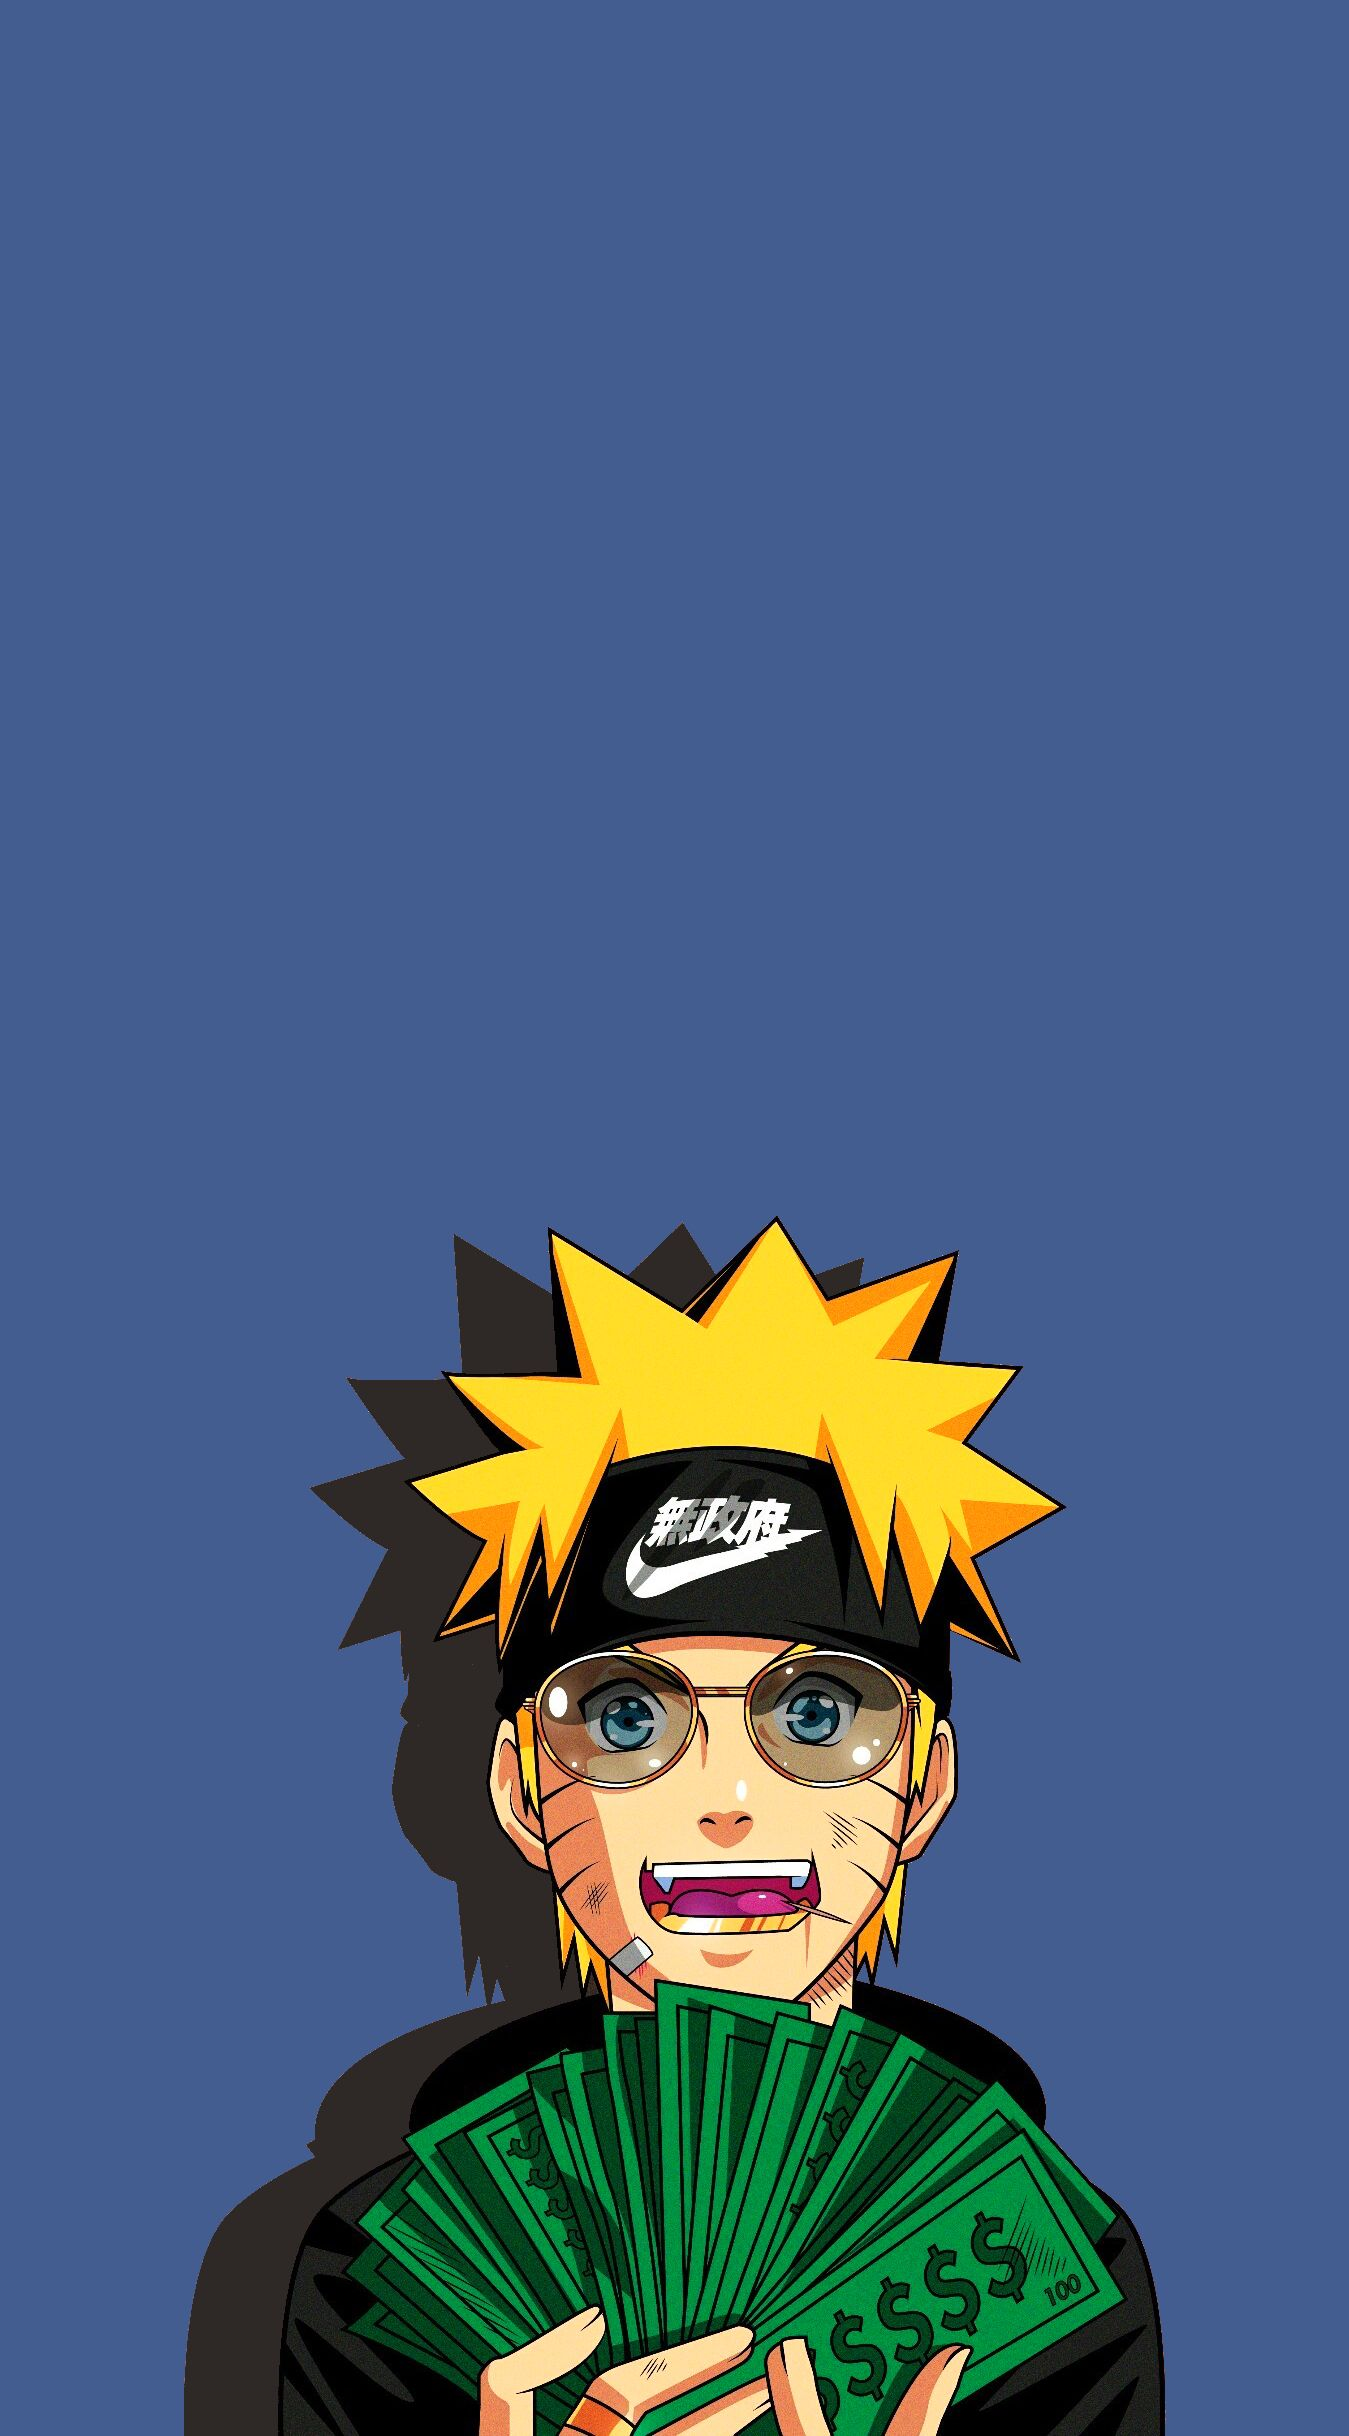 Naruto Money Iphone Wallpapers Iphone Wallpaper Dope Wallpapers